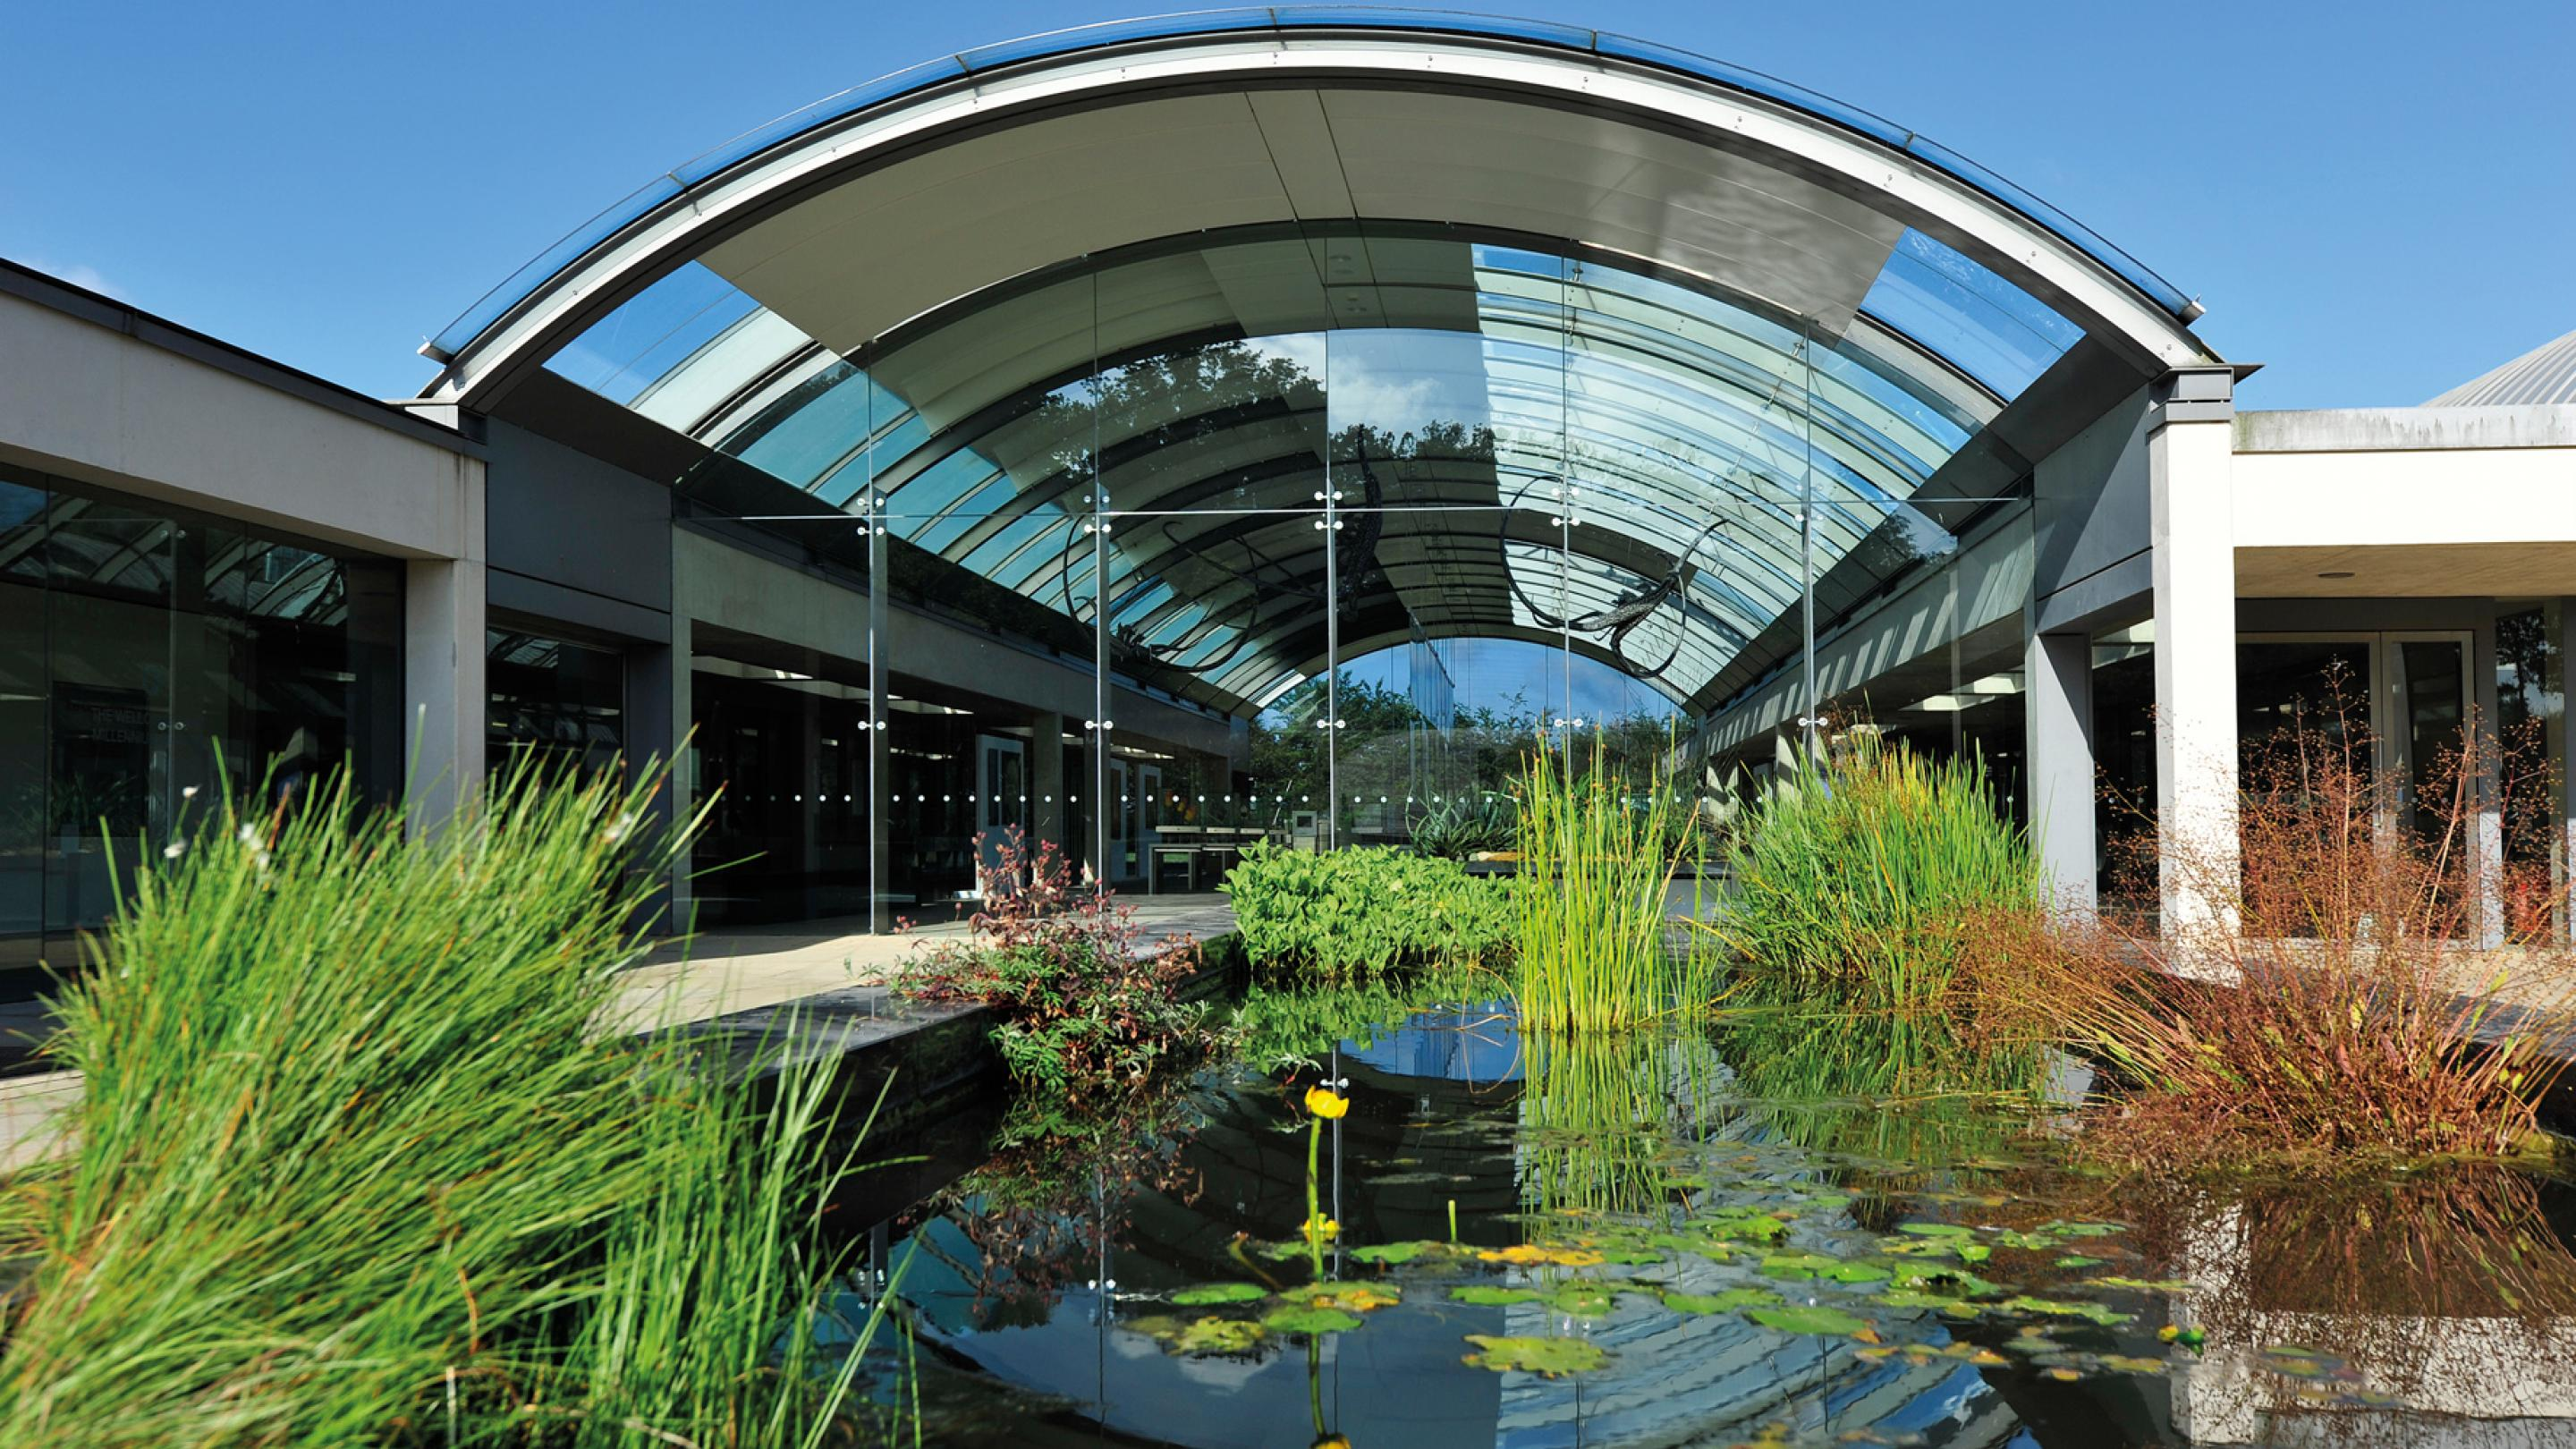 Photo of front of Millennium Seed Bank